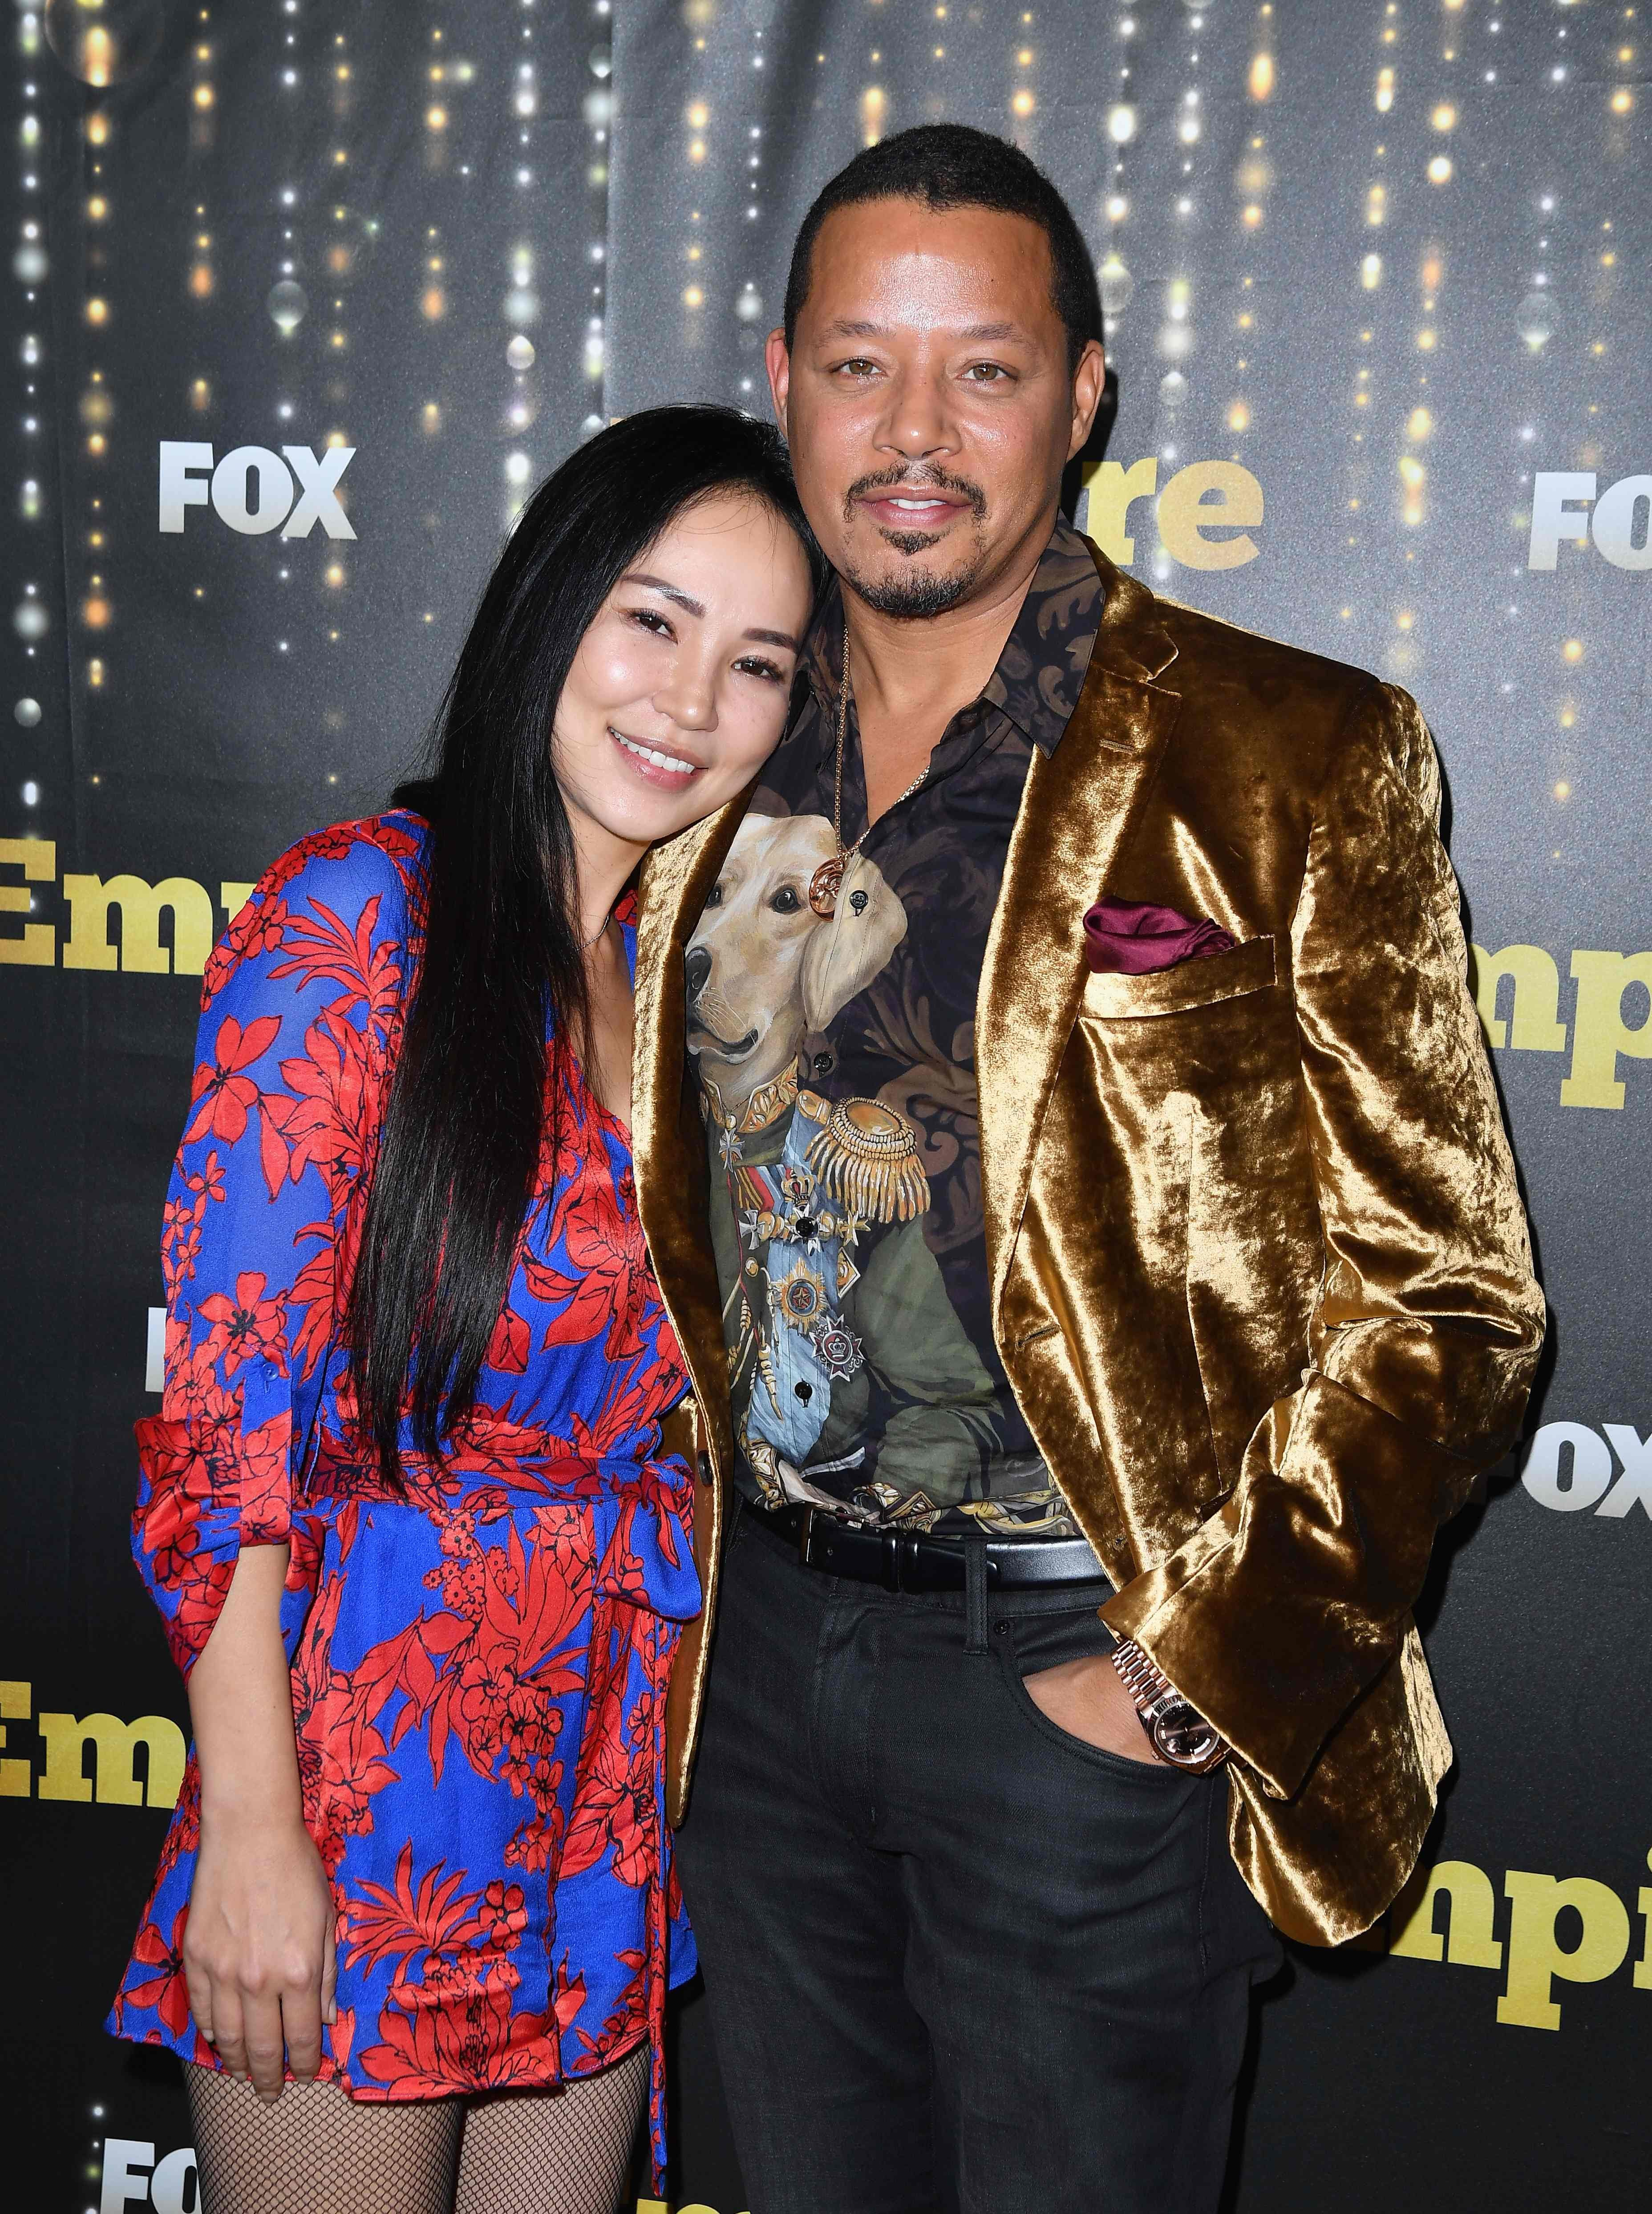 'Empire' star Terrence Howard proposes to ex-wife Mira Pak, three years after divorce